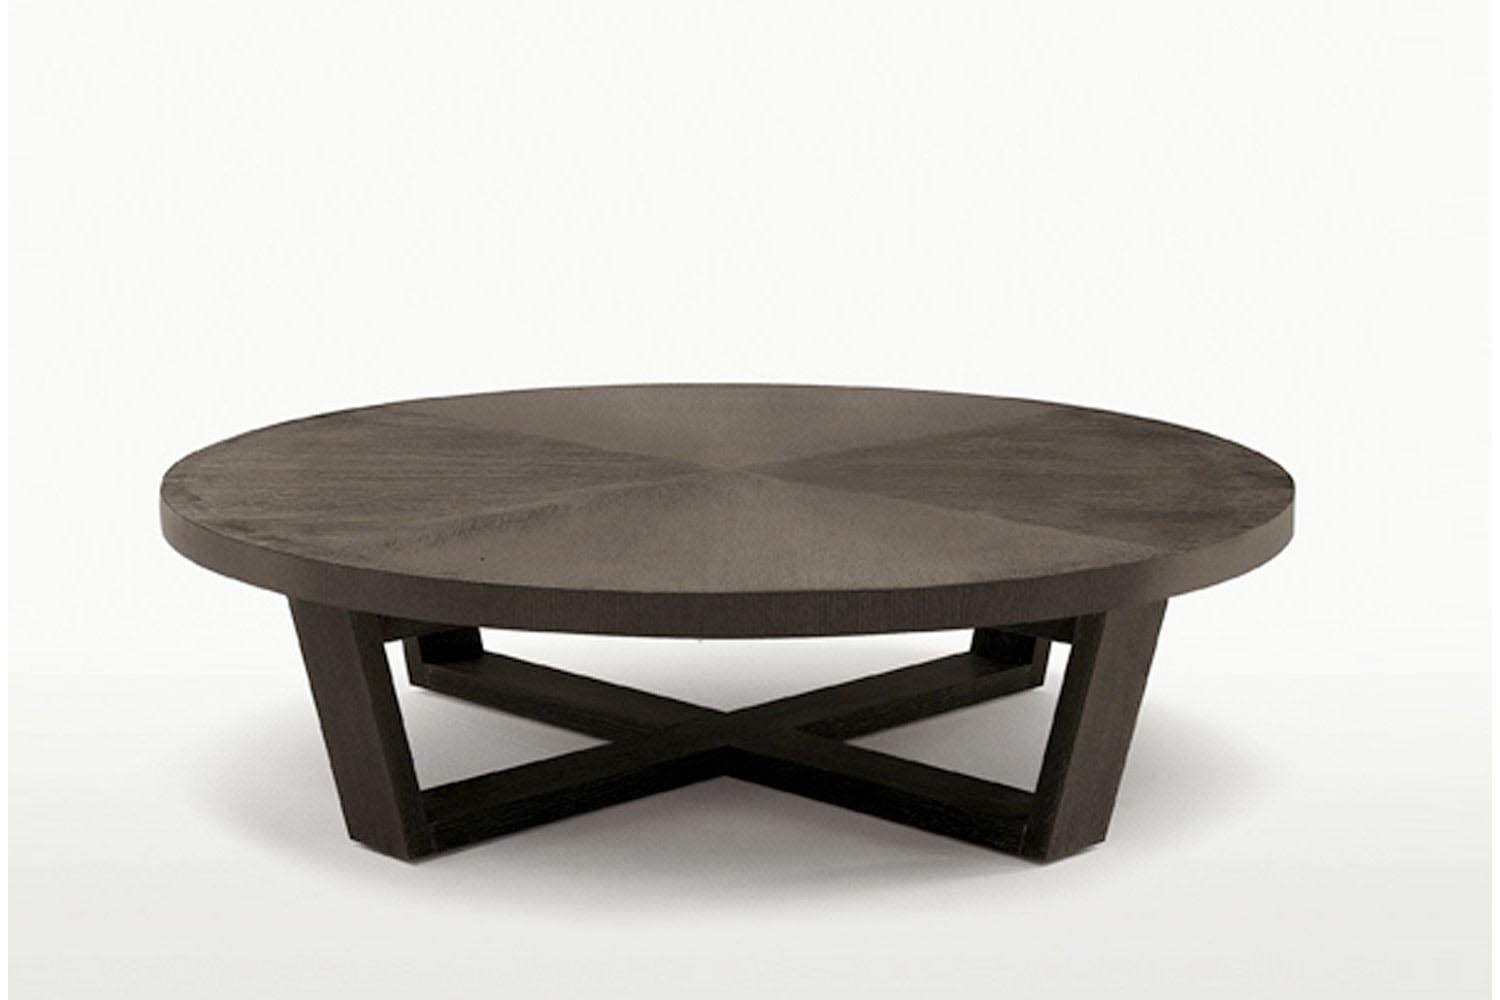 Xilos Small Table by Antonio Citterio for Maxalto